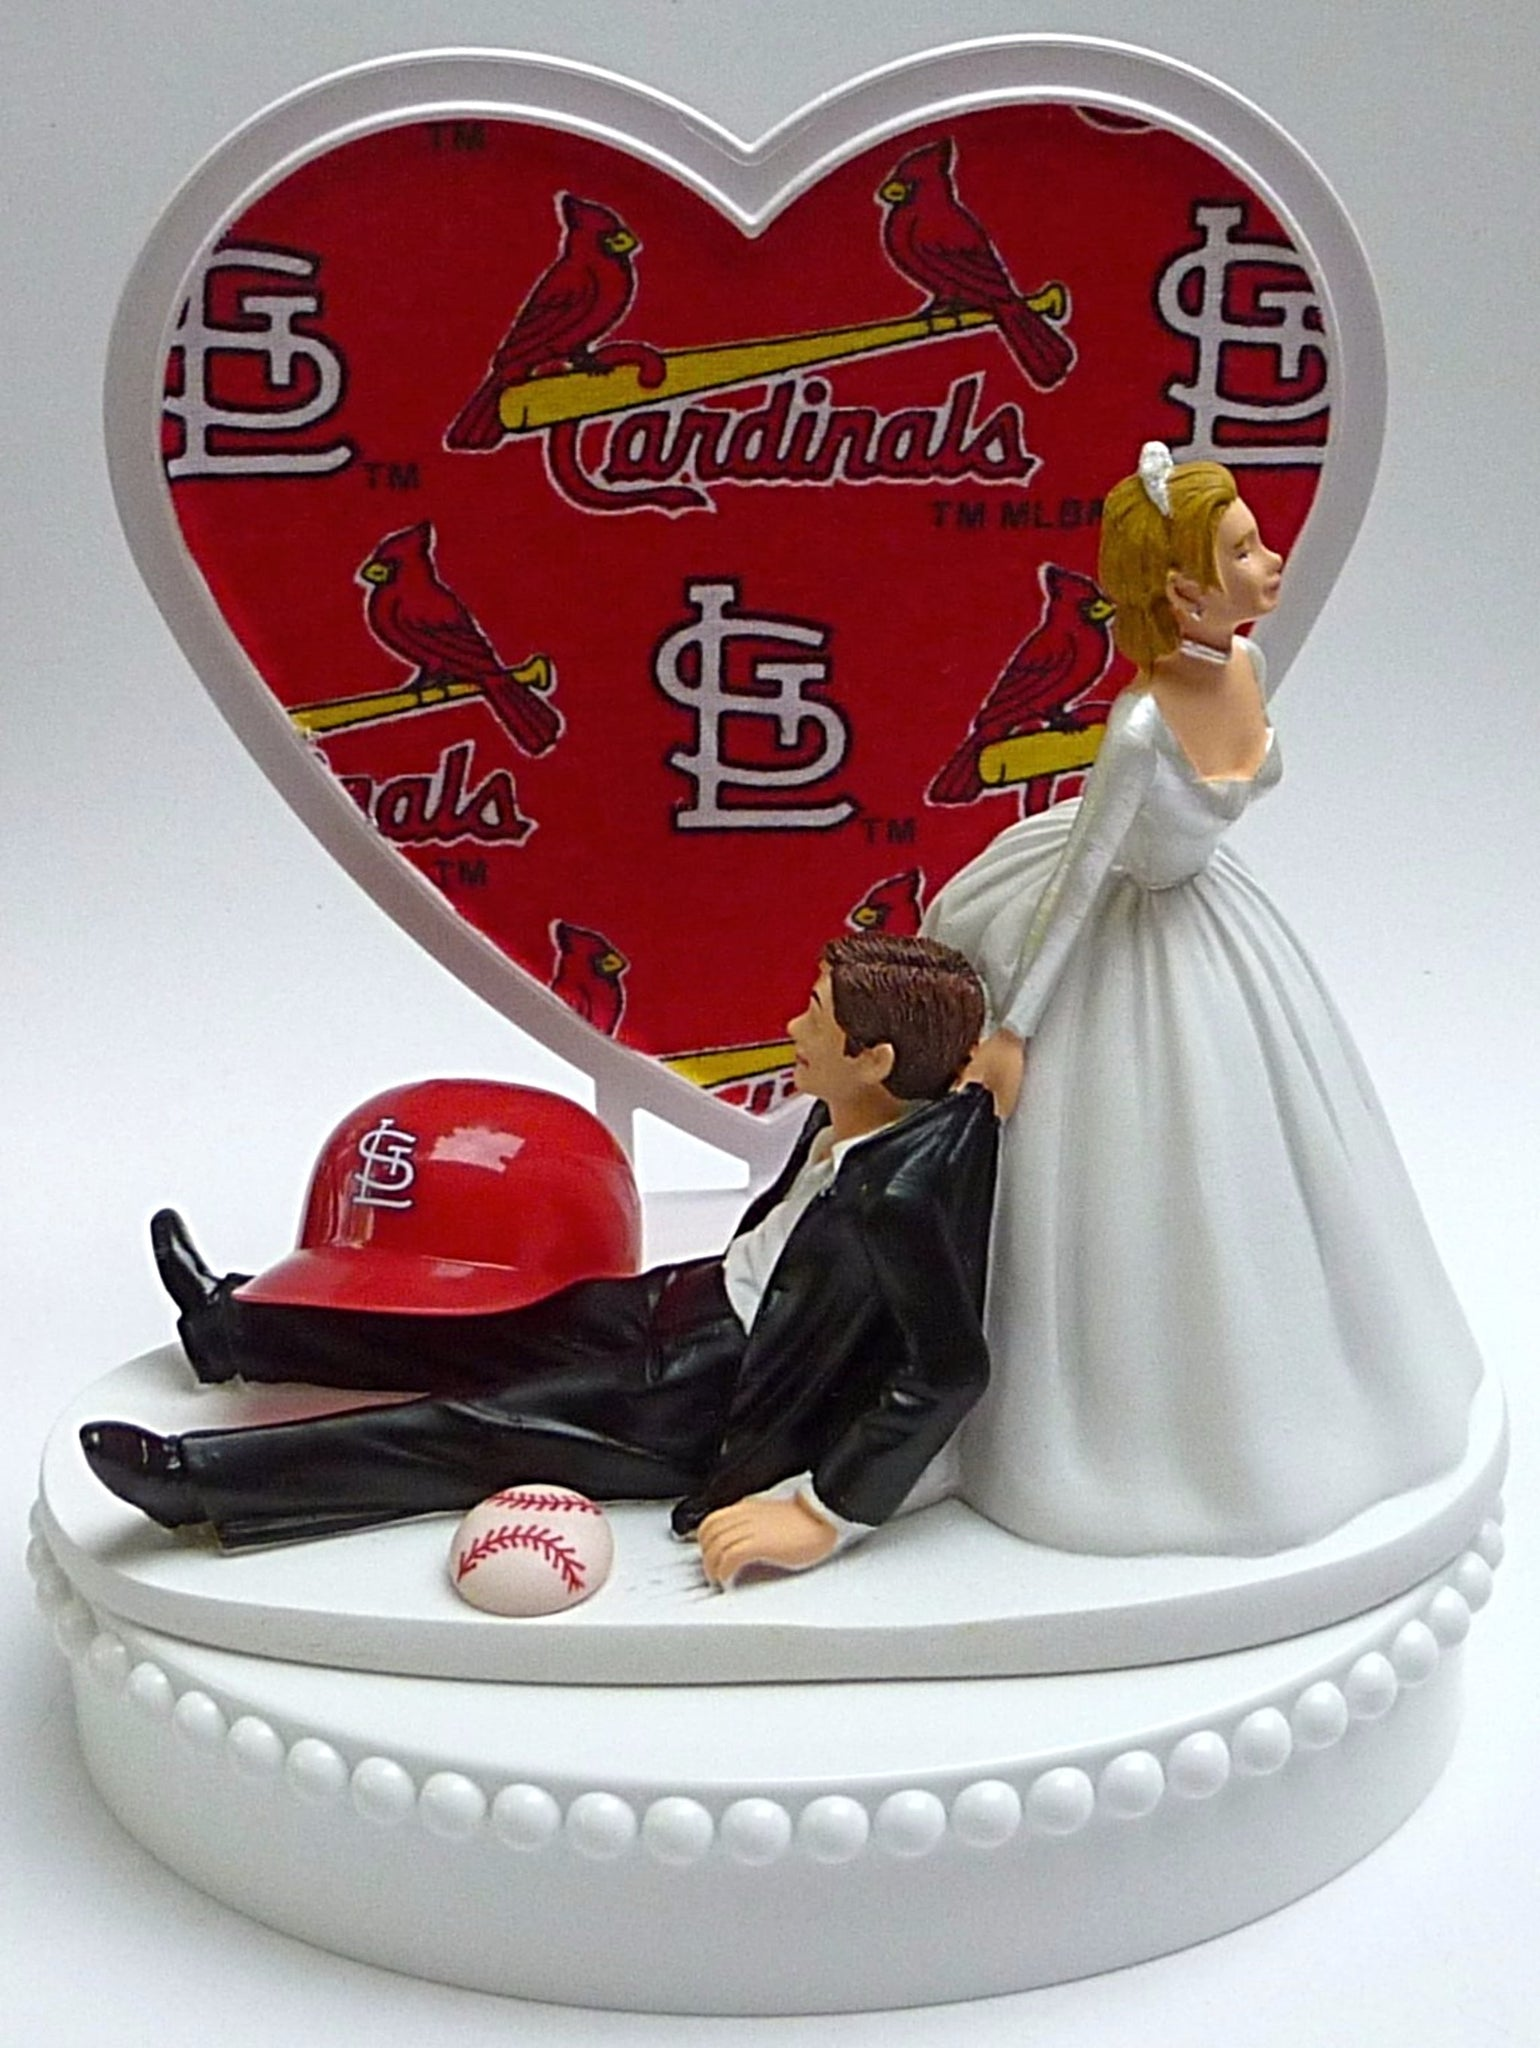 St. Louis Cardinals wedding cake topper Cards Saint MLB baseball sports fans fun bride dragging groom humorous unique original funny